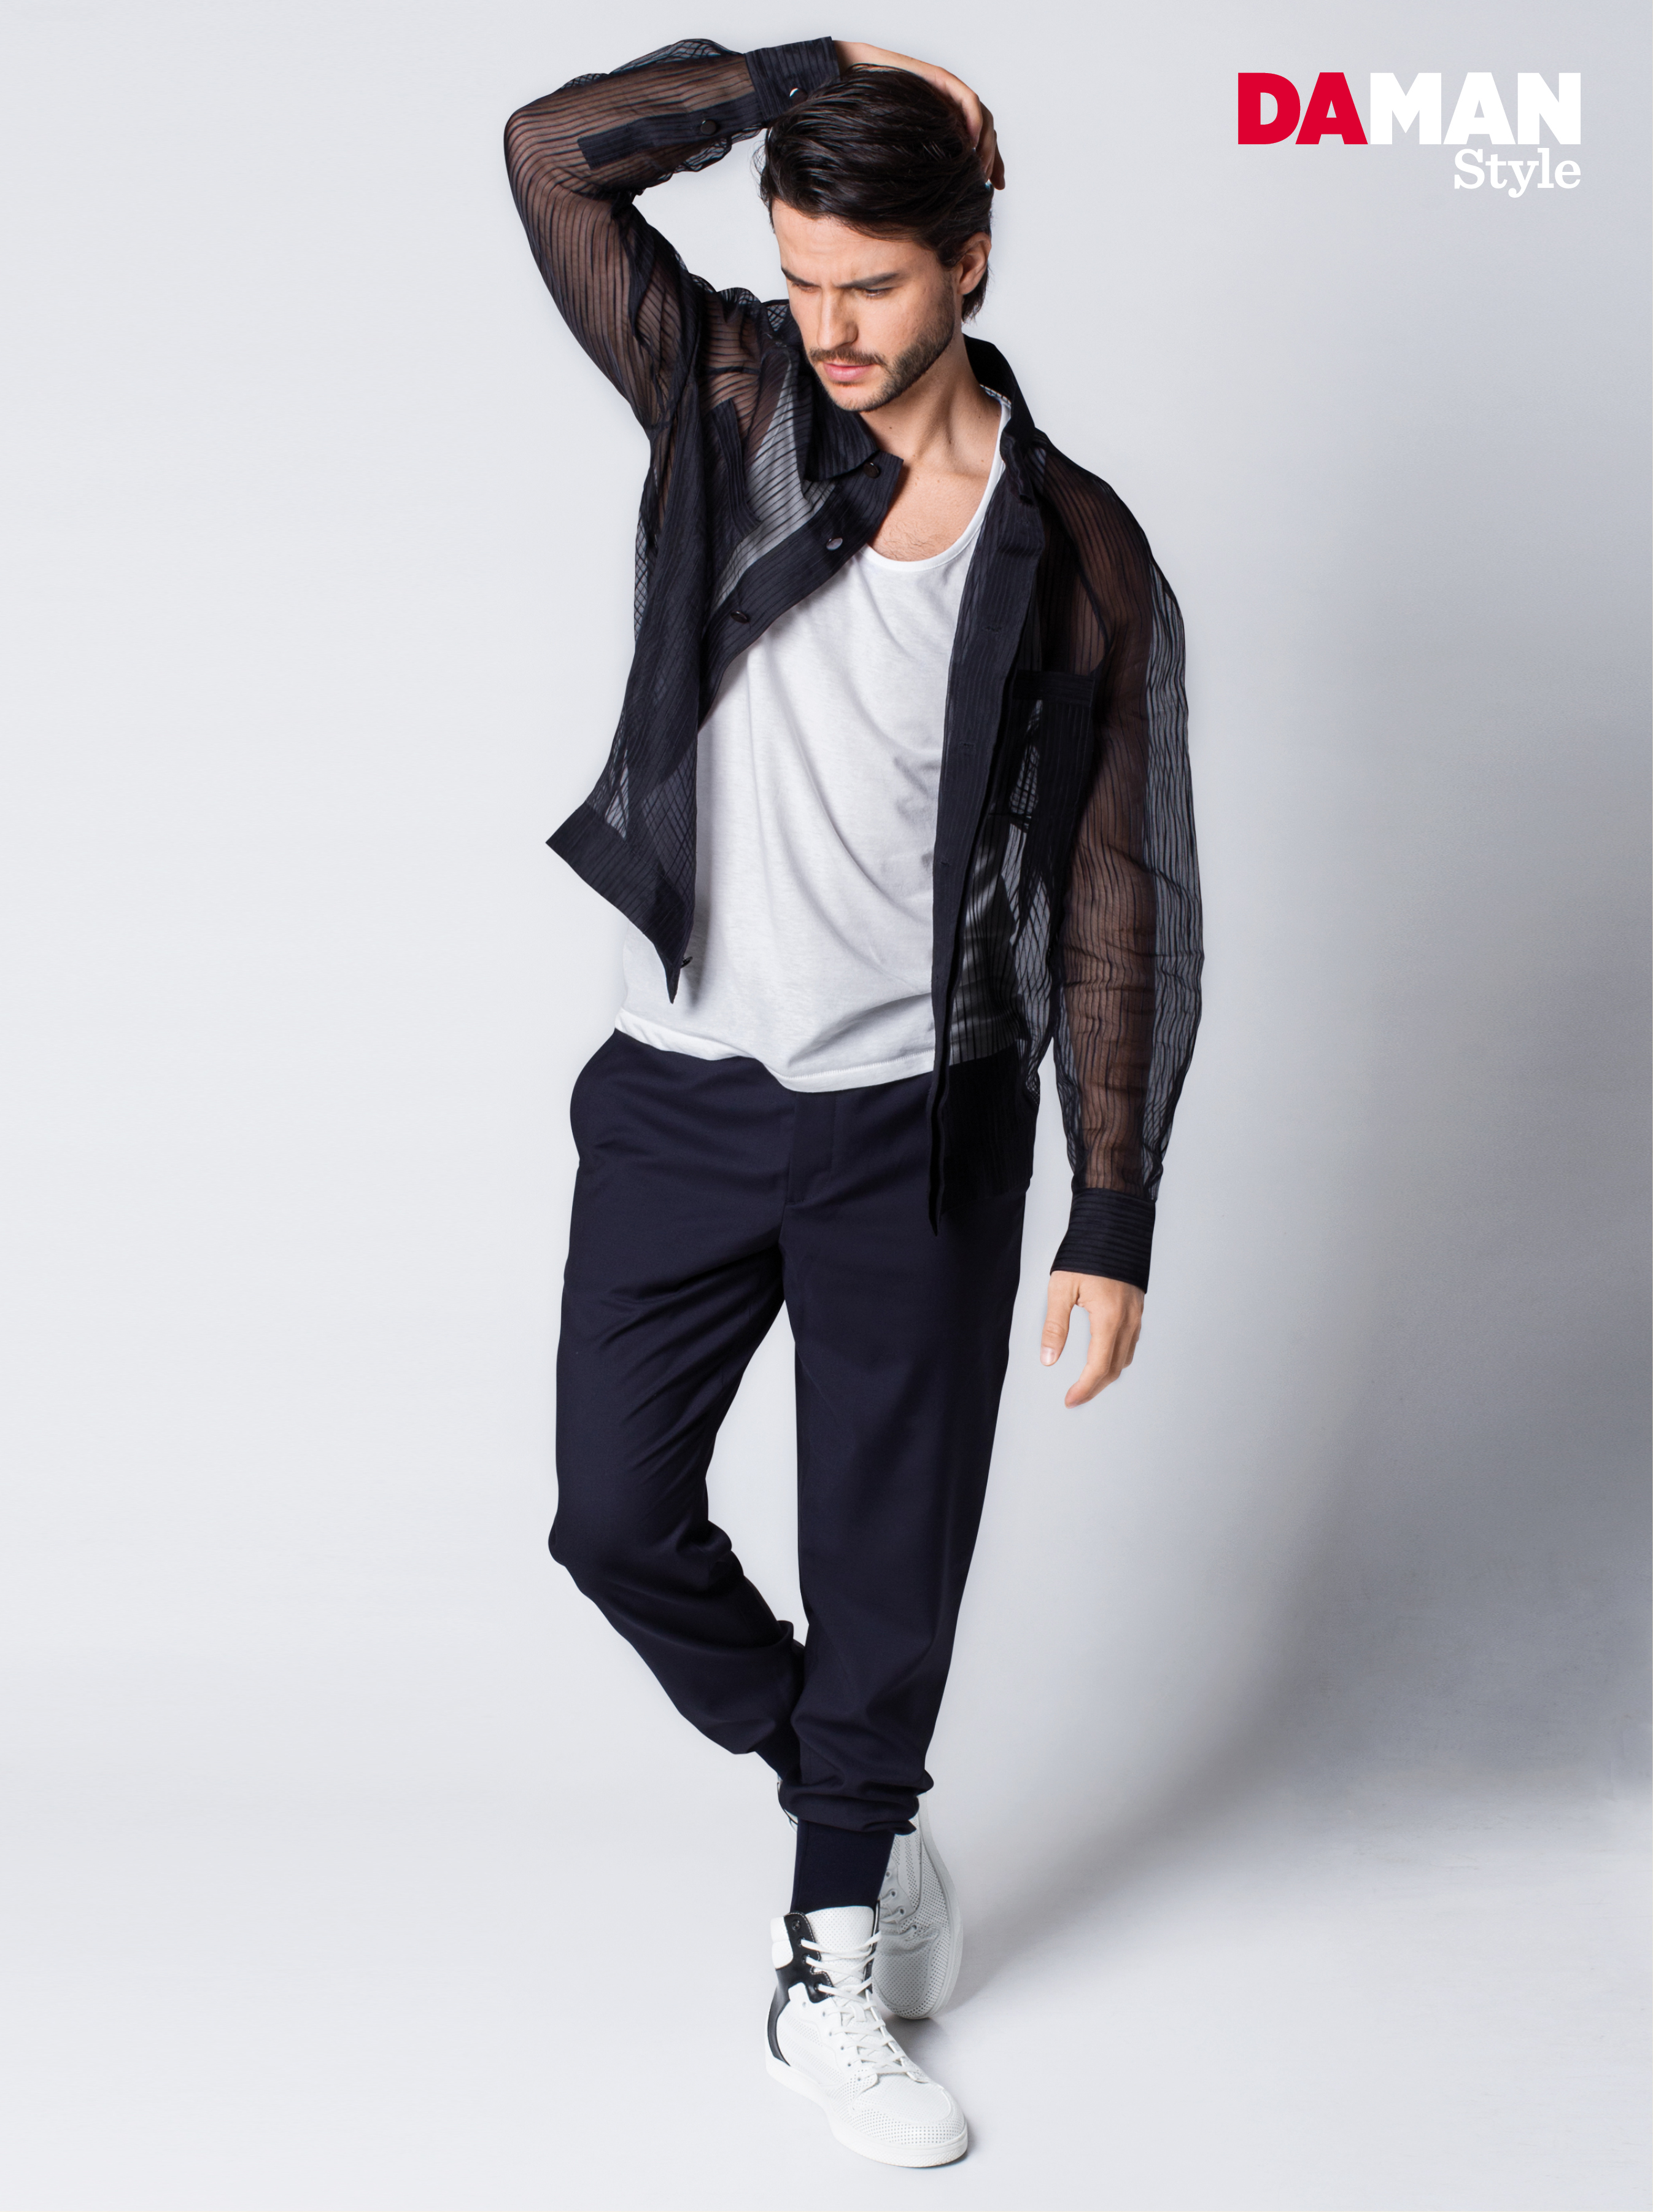 96ebe8605f07a7 3 Ways to Wear Sheer Tops for Men